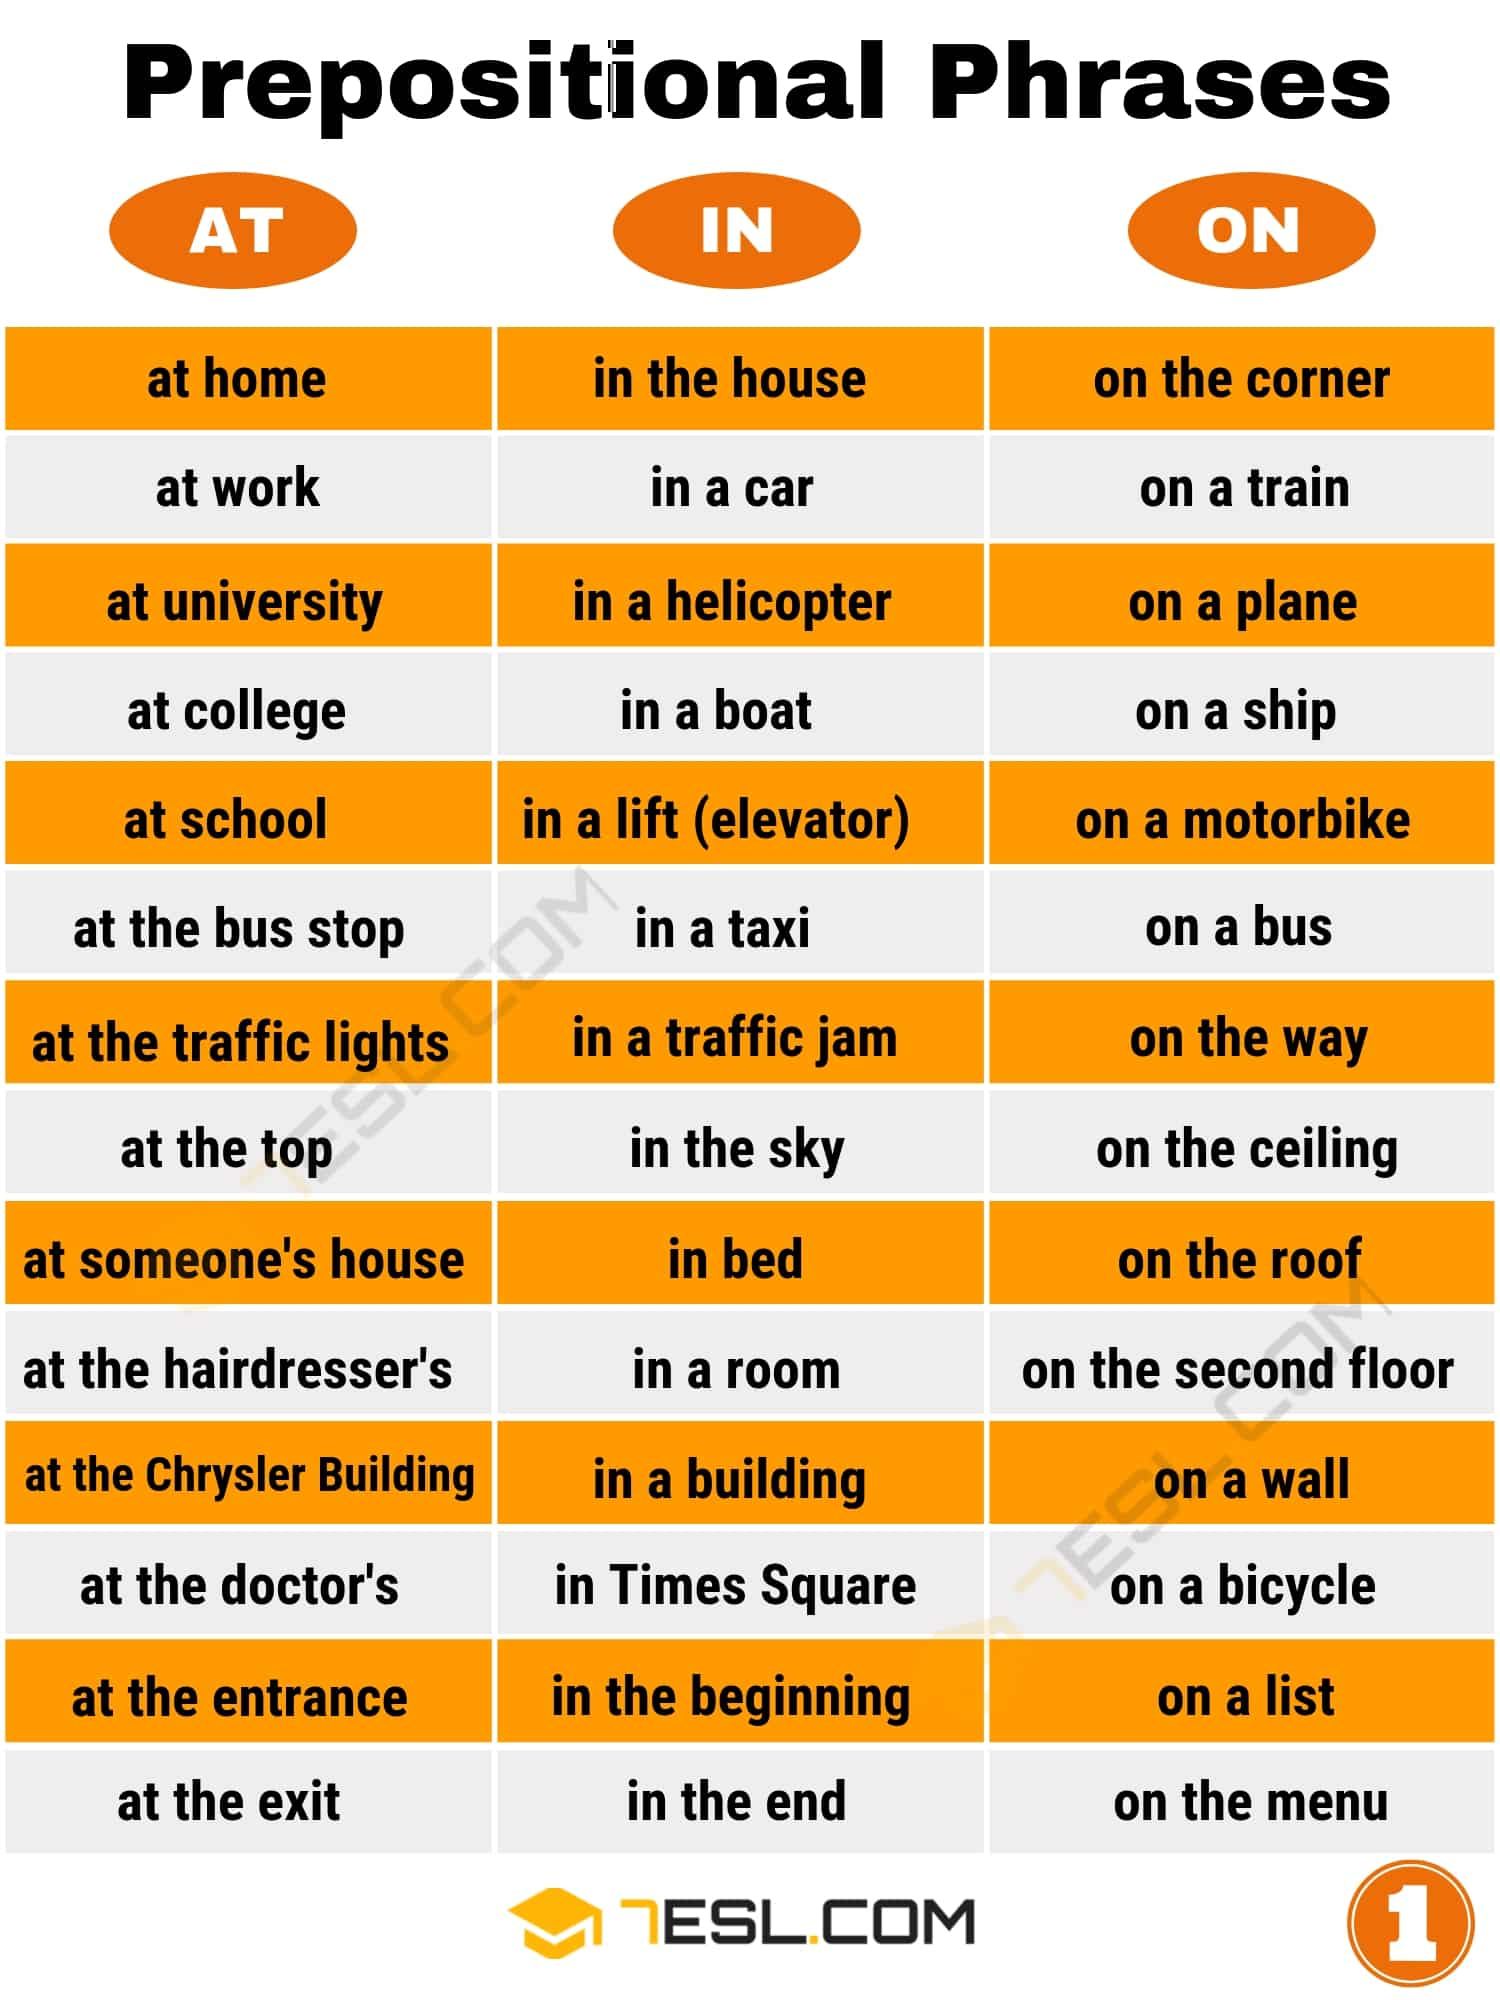 hight resolution of Prepositions: A Complete Grammar Guide (with Preposition Examples) • 7ESL